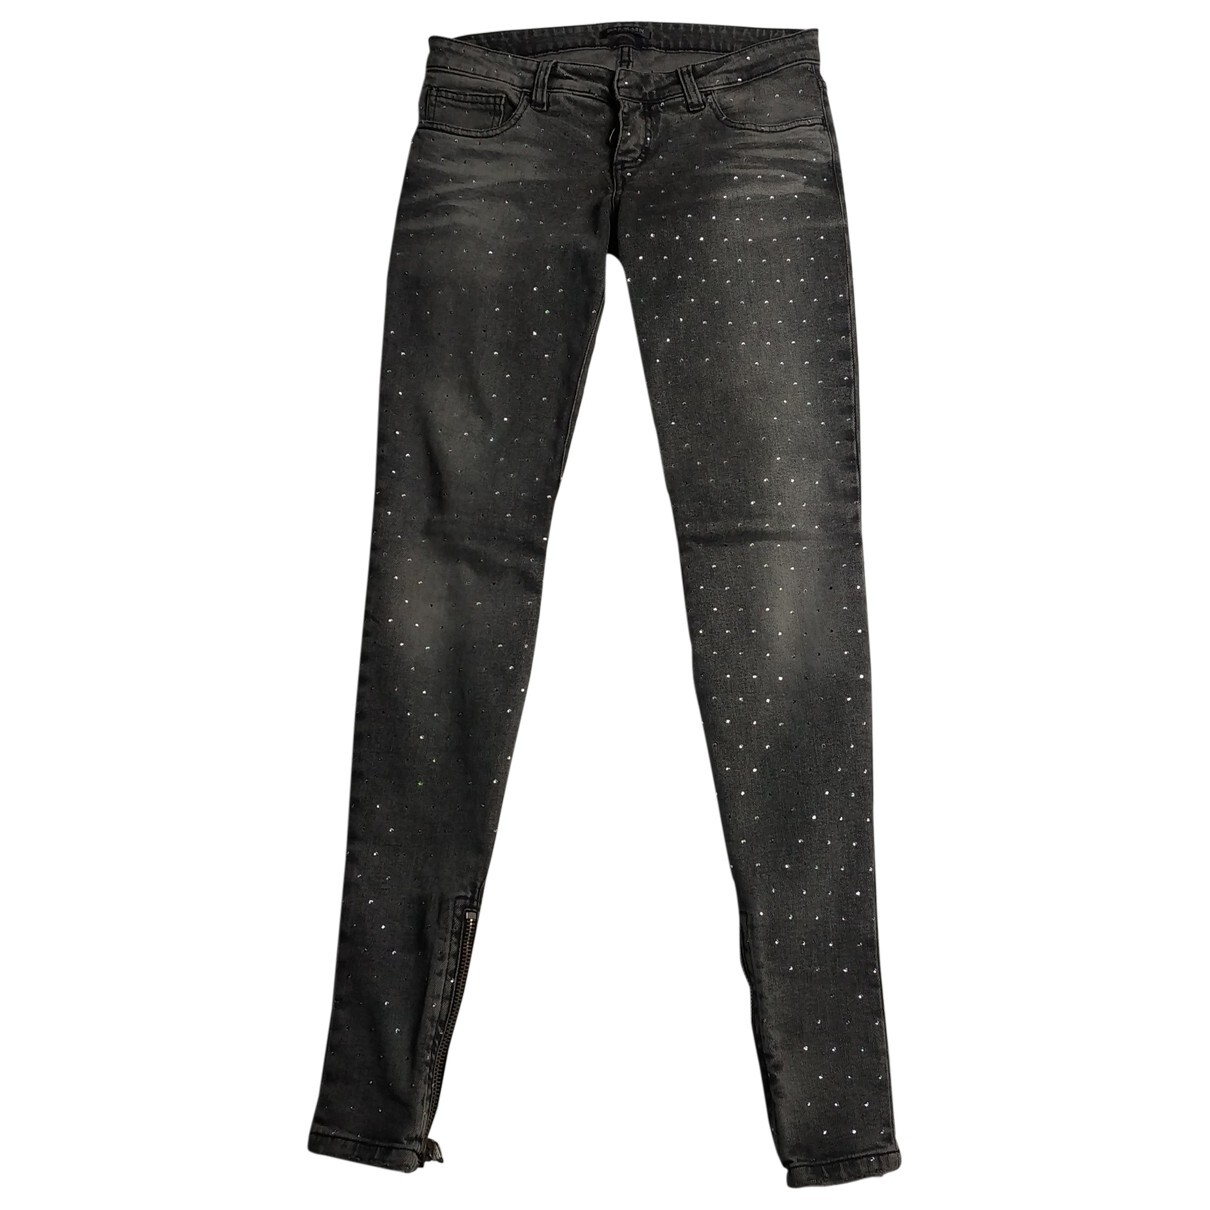 Balmain slim Jeans with Crystals